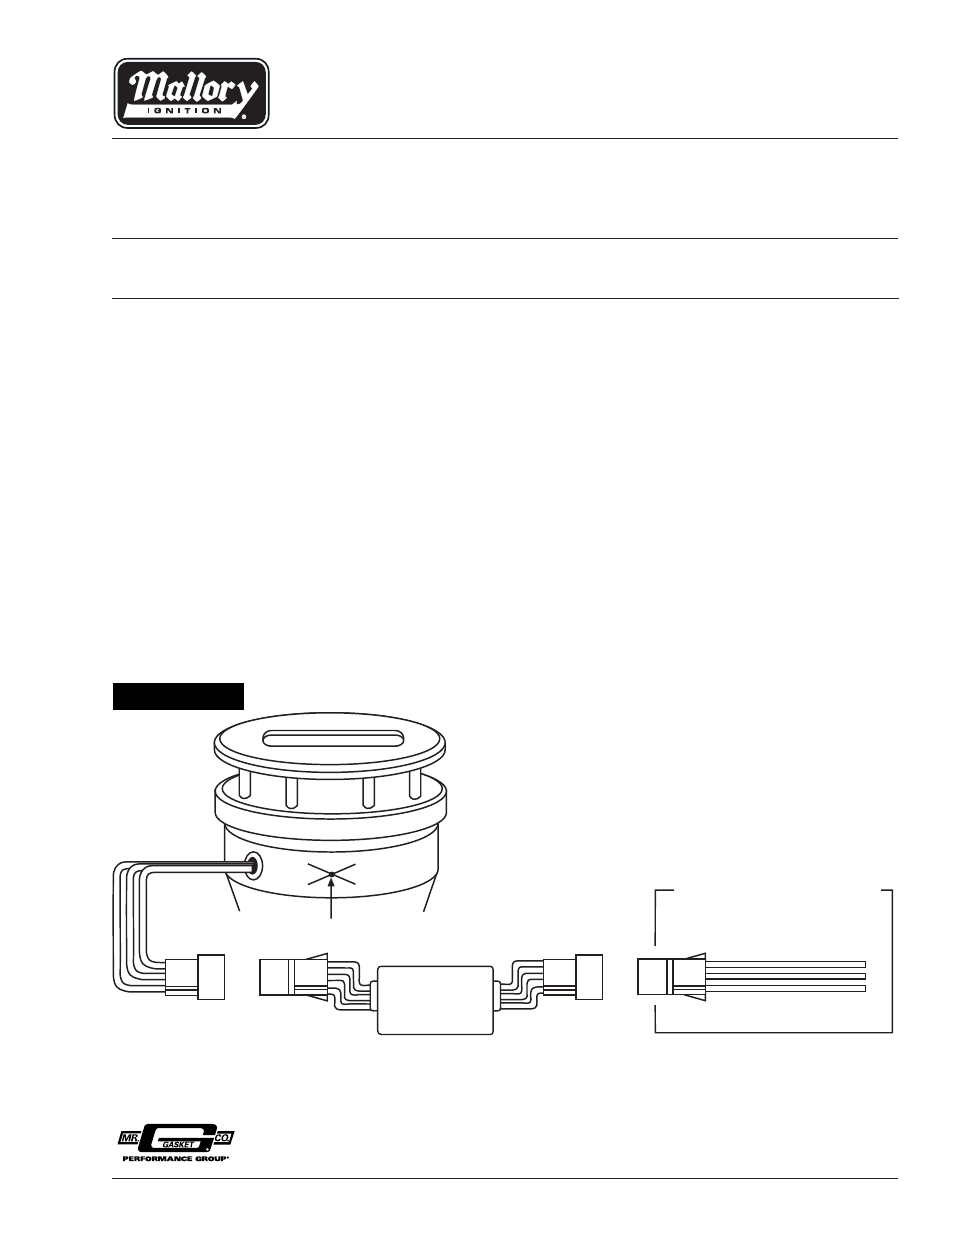 hight resolution of wiring harnes guard